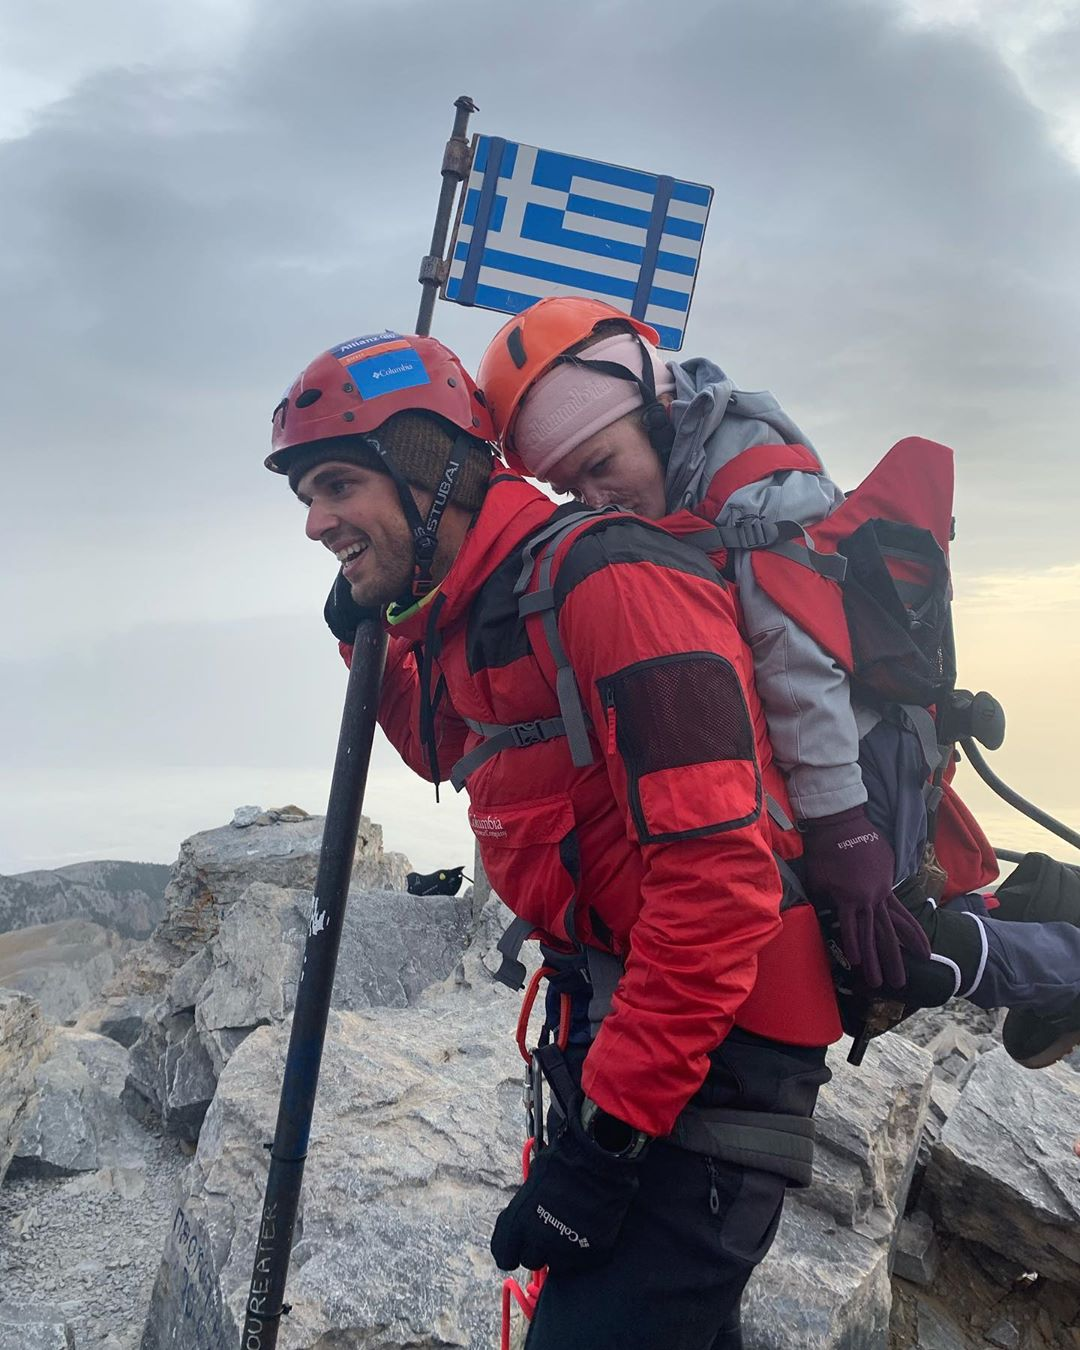 Greek Athlete Doing Good Carrying Disabled Woman Up Mount Olympus